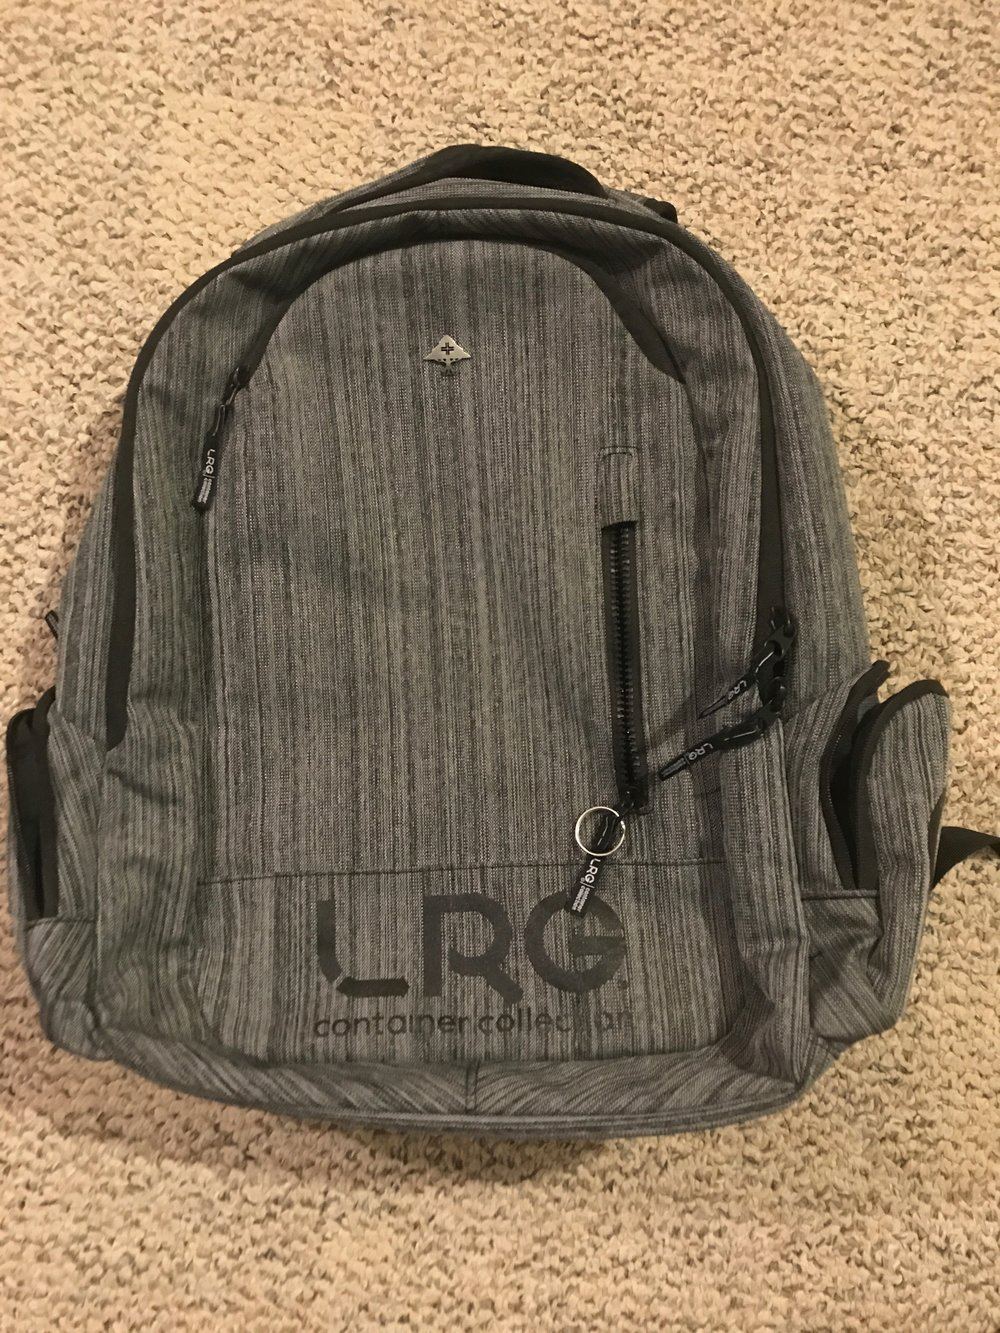 $15 LRG laptop backpack  - RETAIL: $50